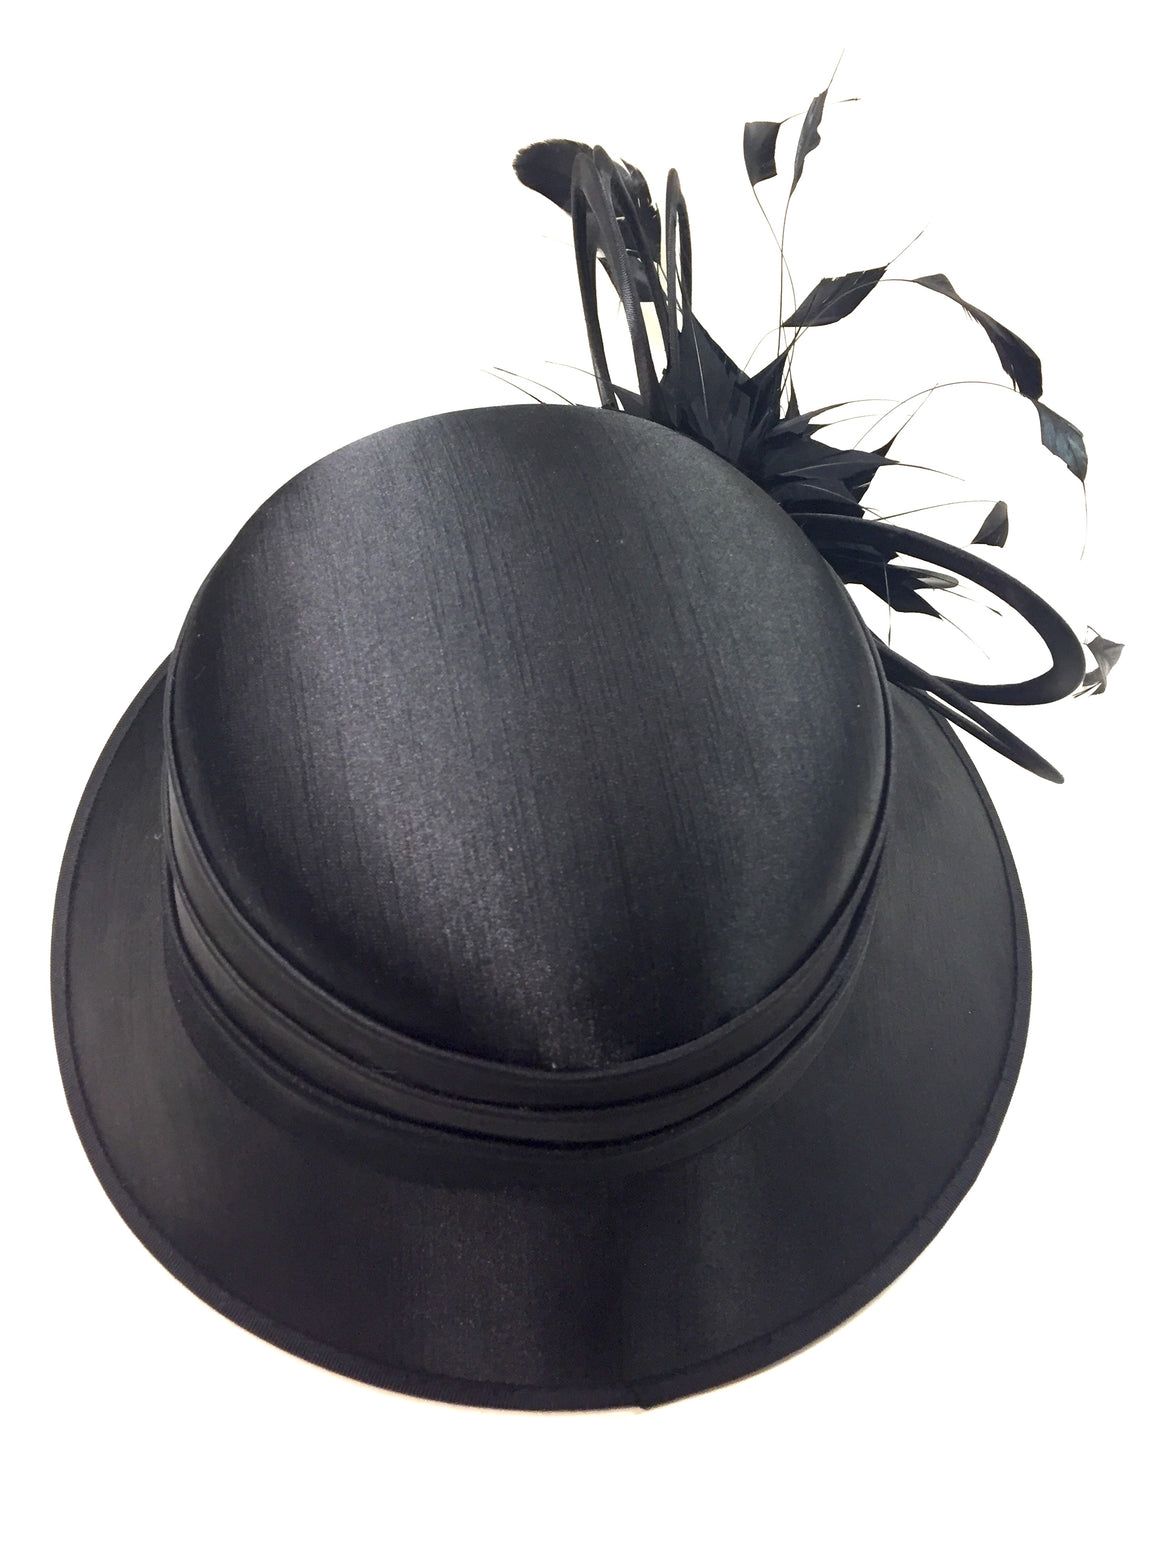 GIOVANNIO NEW YORK Black Molded Satin Polyester Feather Embellishment Brim Hat